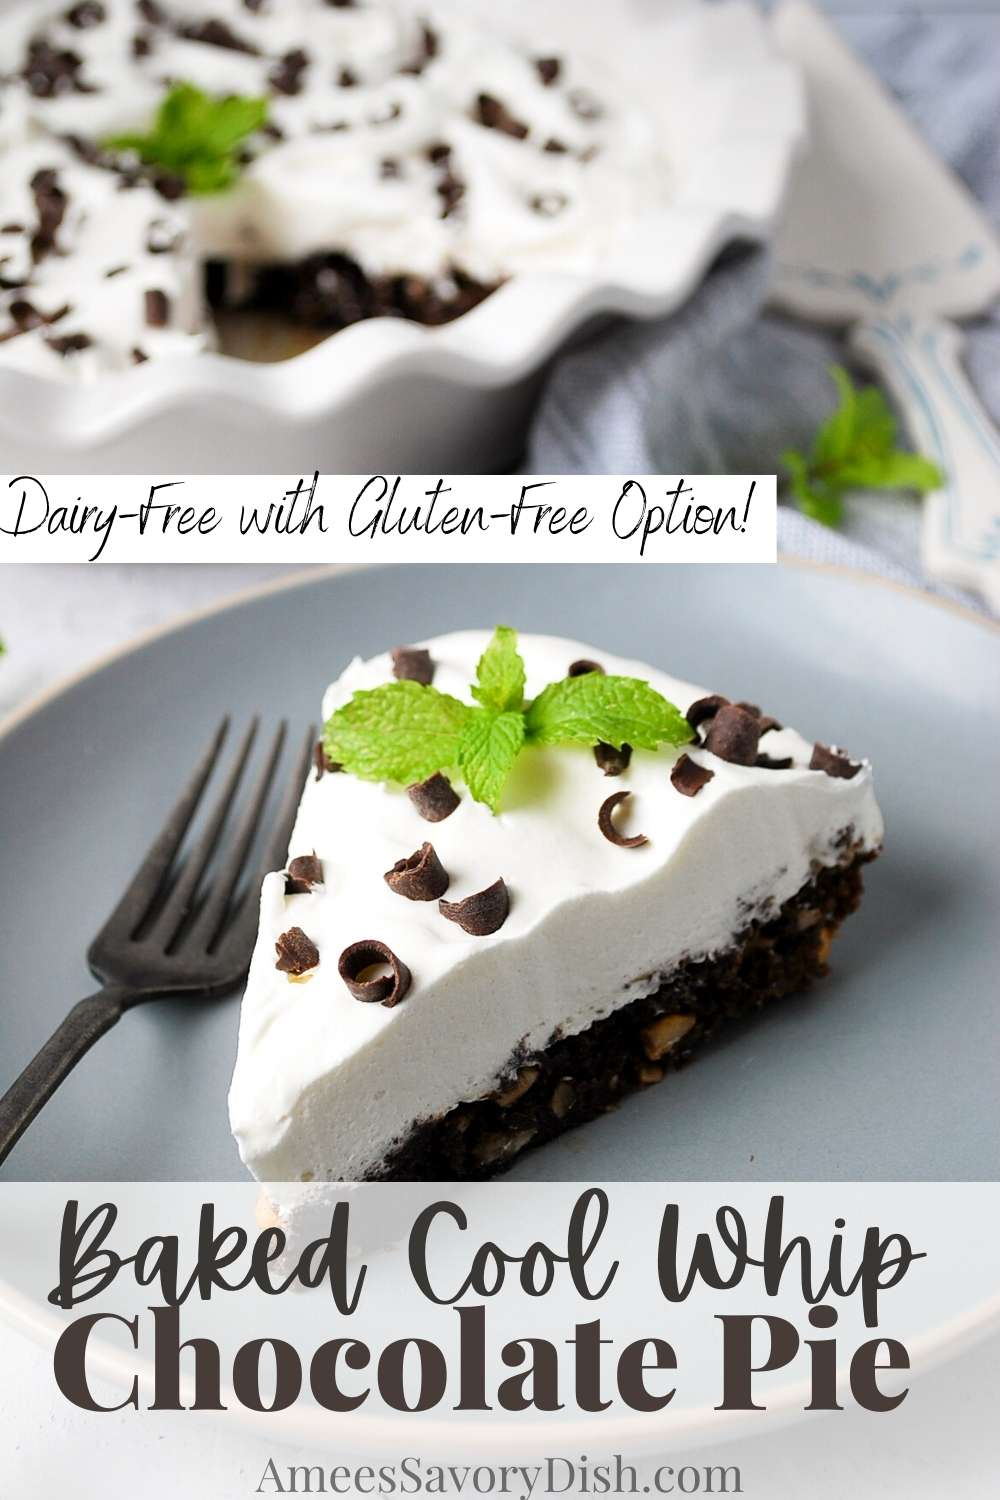 Lightened-up and refreshing, this Cool Whip chocolate pie is the perfect sweet summertime dessert! via @Ameessavorydish